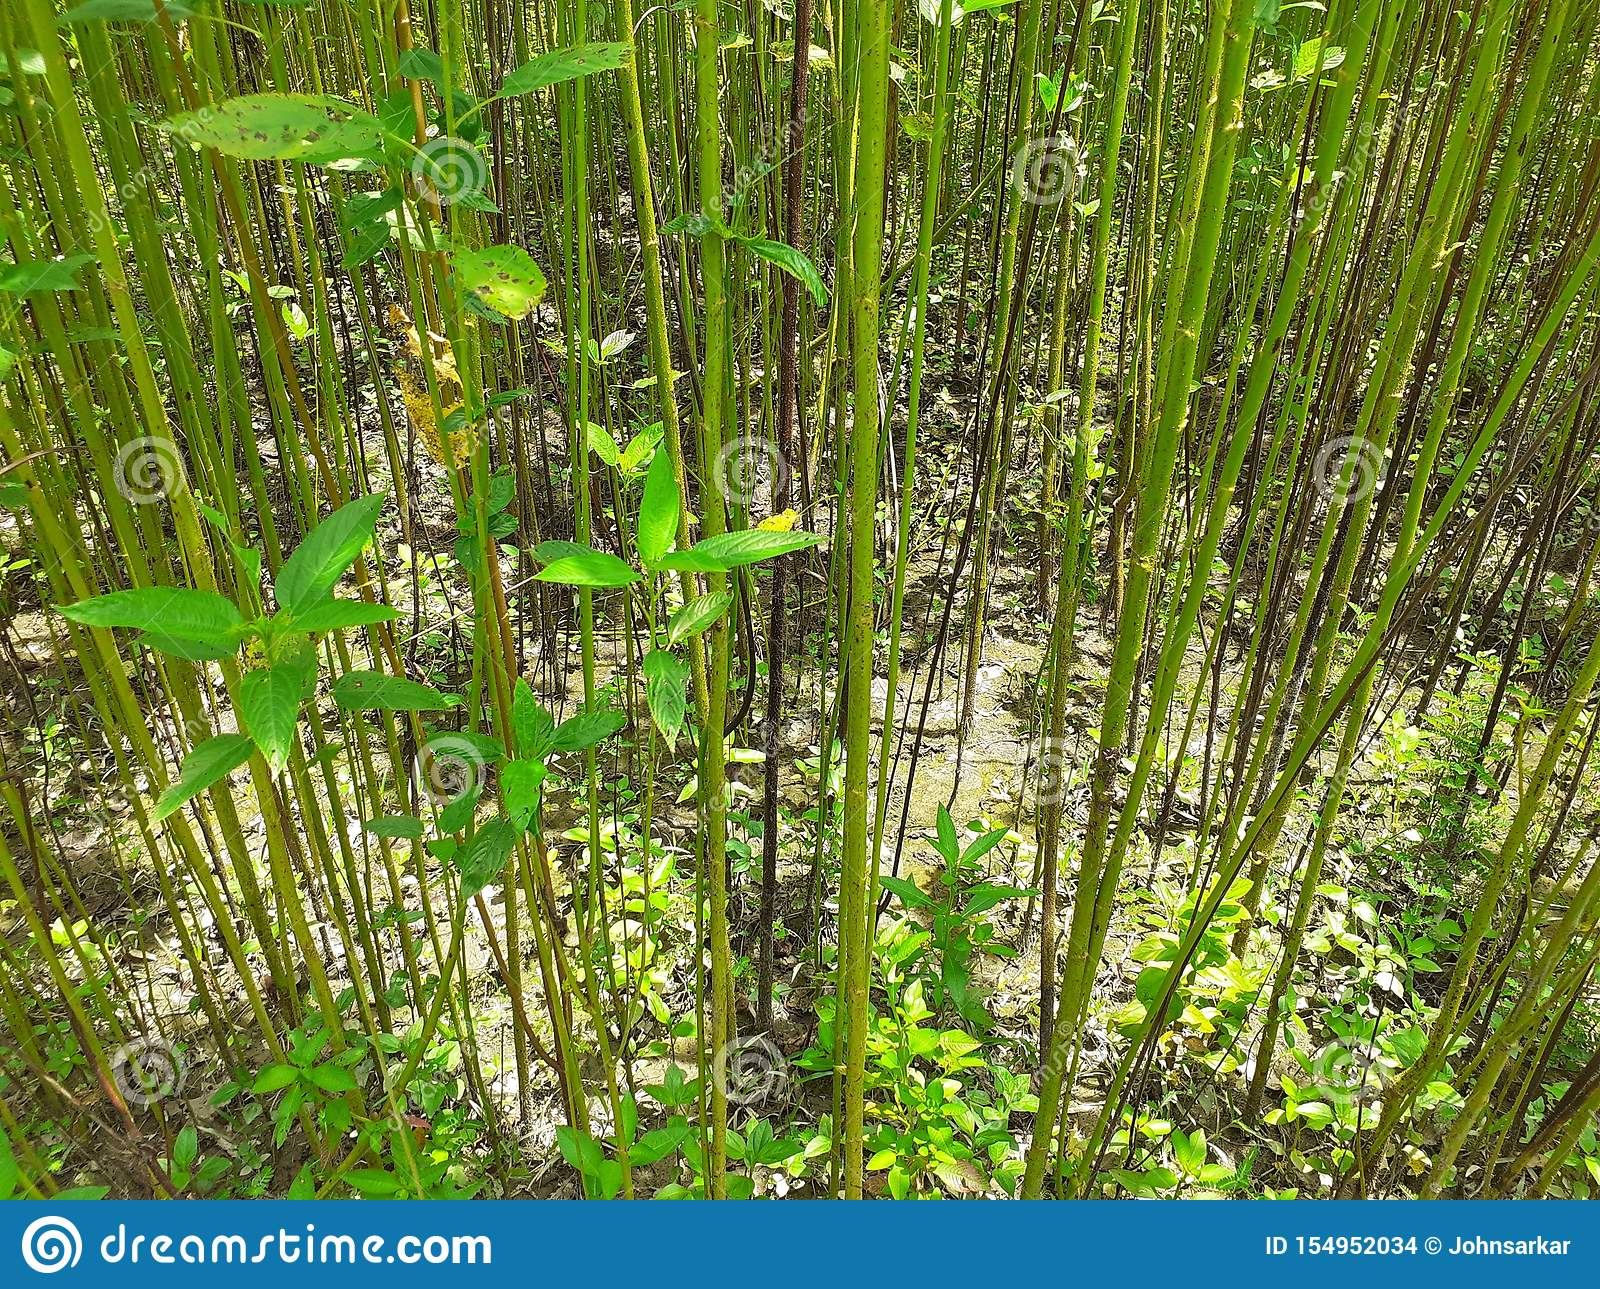 Green and tall Jute plants. Jute cultivation in Assam in India